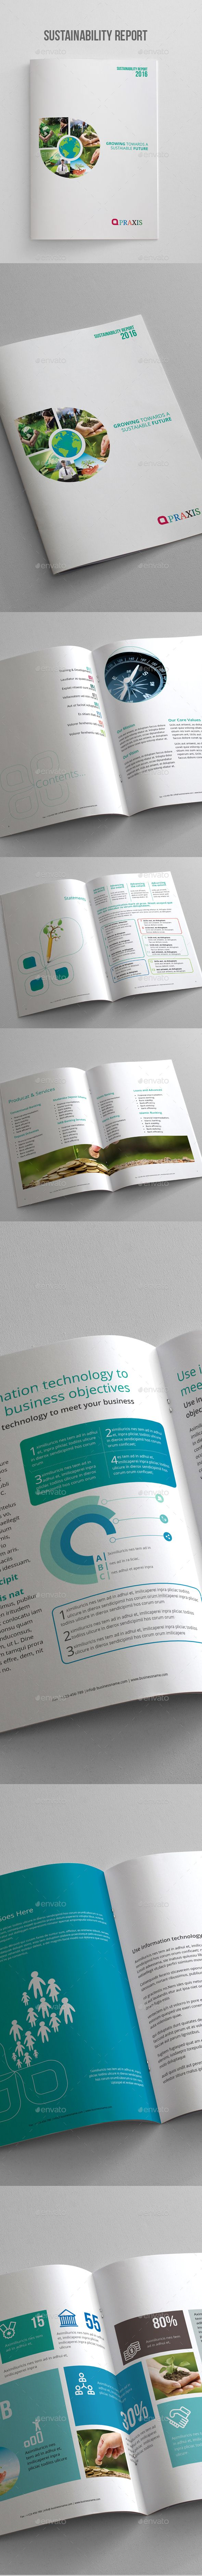 Sustainability Report Brochure - Corporate #Business Cards Download here: https://graphicriver.net/item/sustainability-report-brochure/17378244?ref=classicdesignp